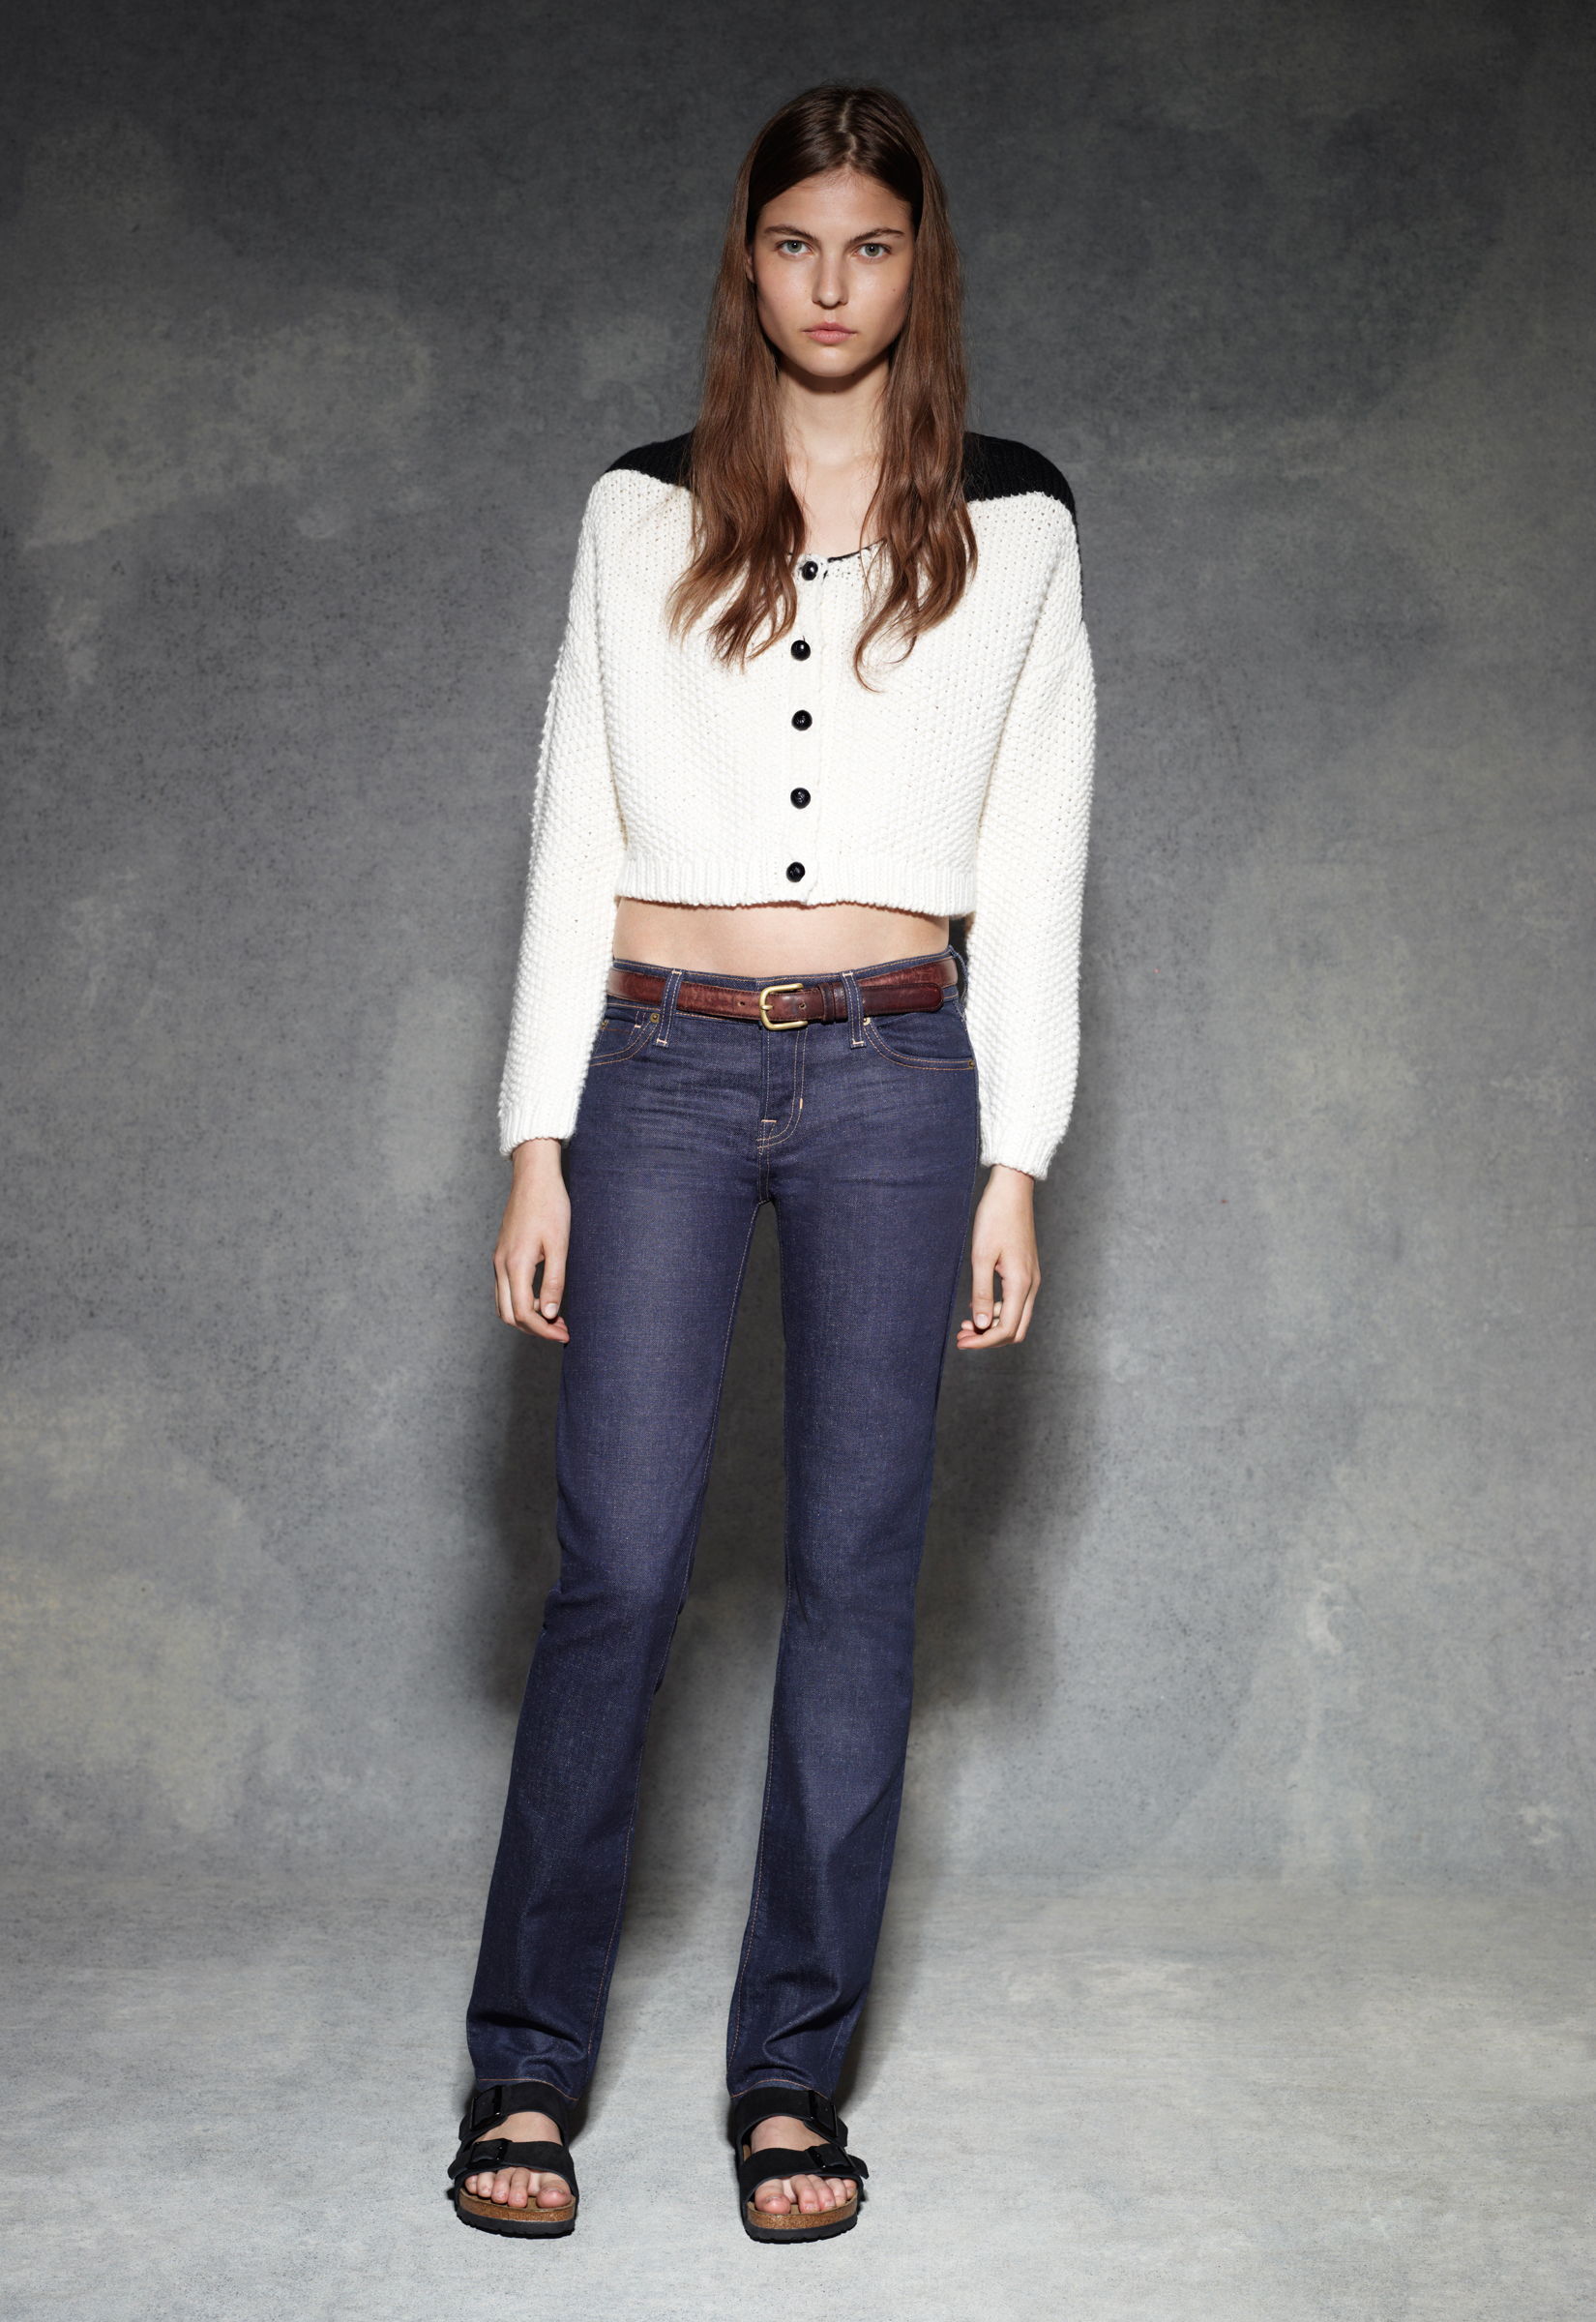 Textile Elizabeth And James Fall 2013 Look (17)